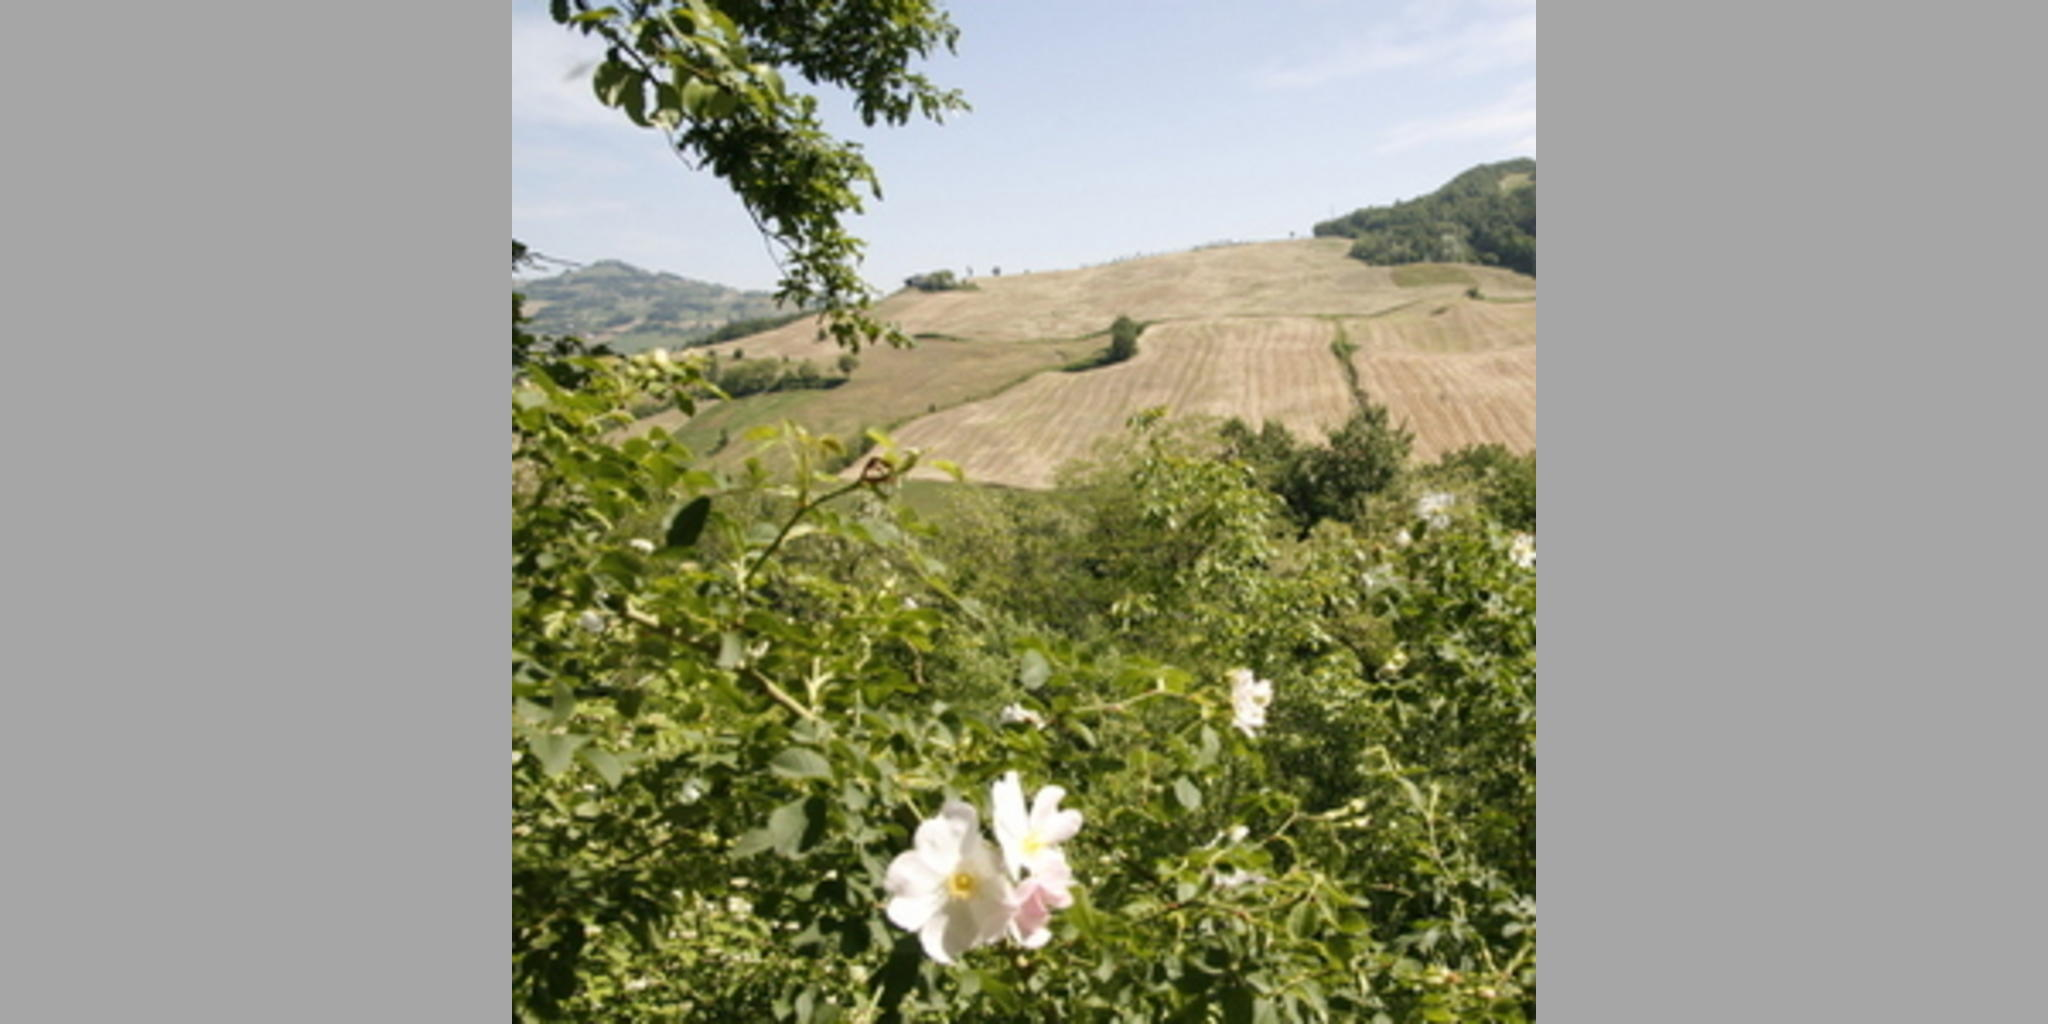 Bed & Breakfast Pecorara - Piacenza  Pecorara